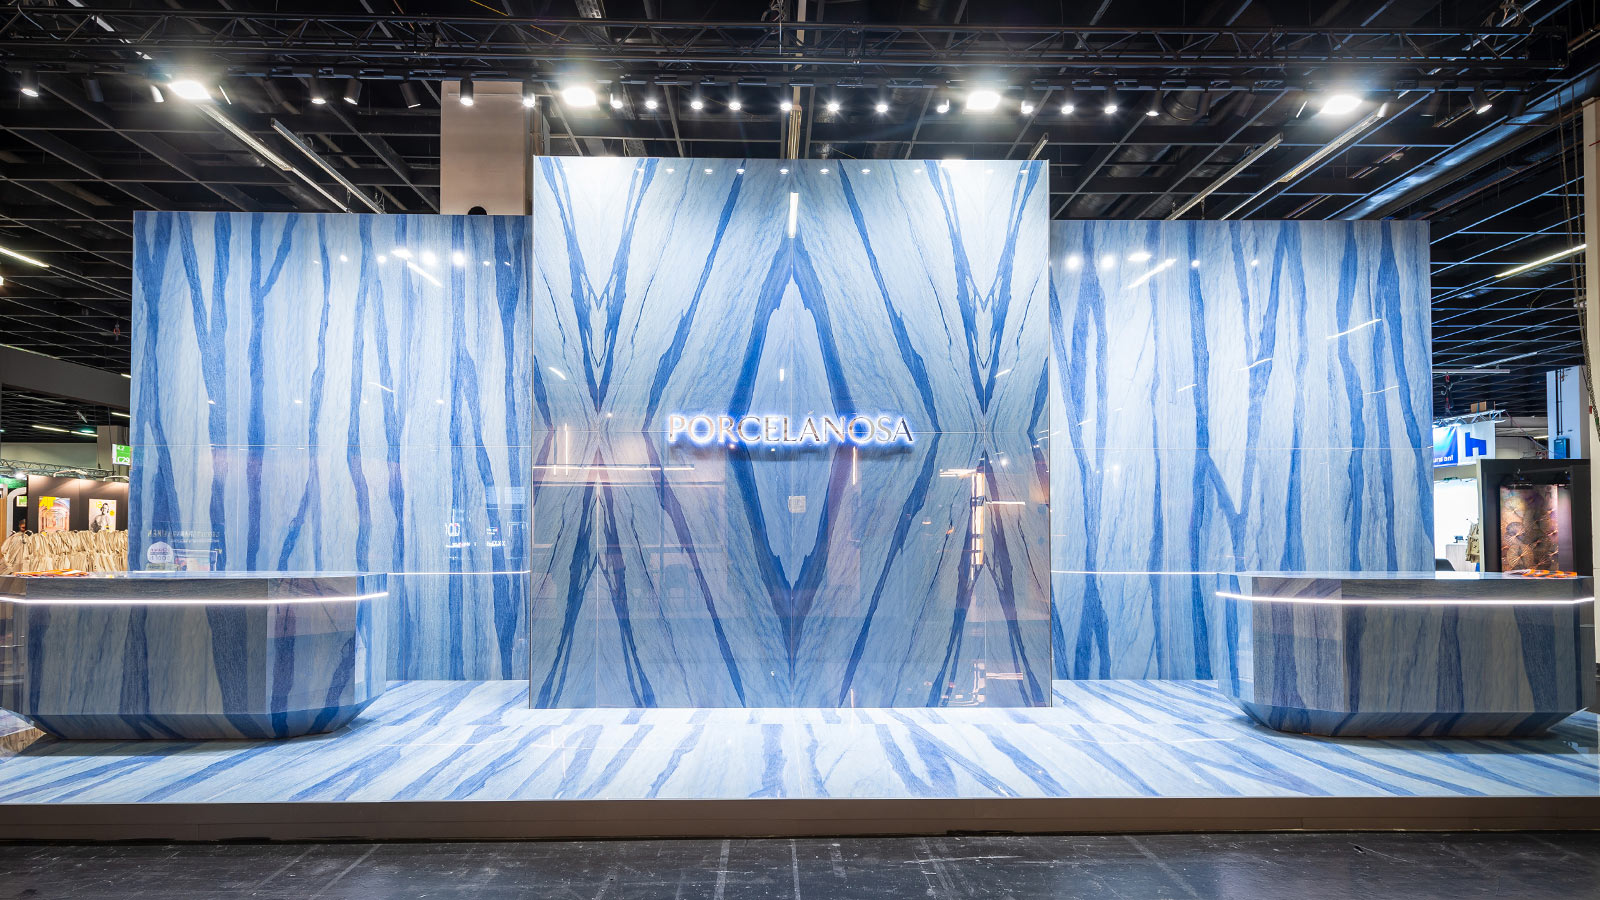 PORCELANOSA Group stands out at the IMM Cologne fair